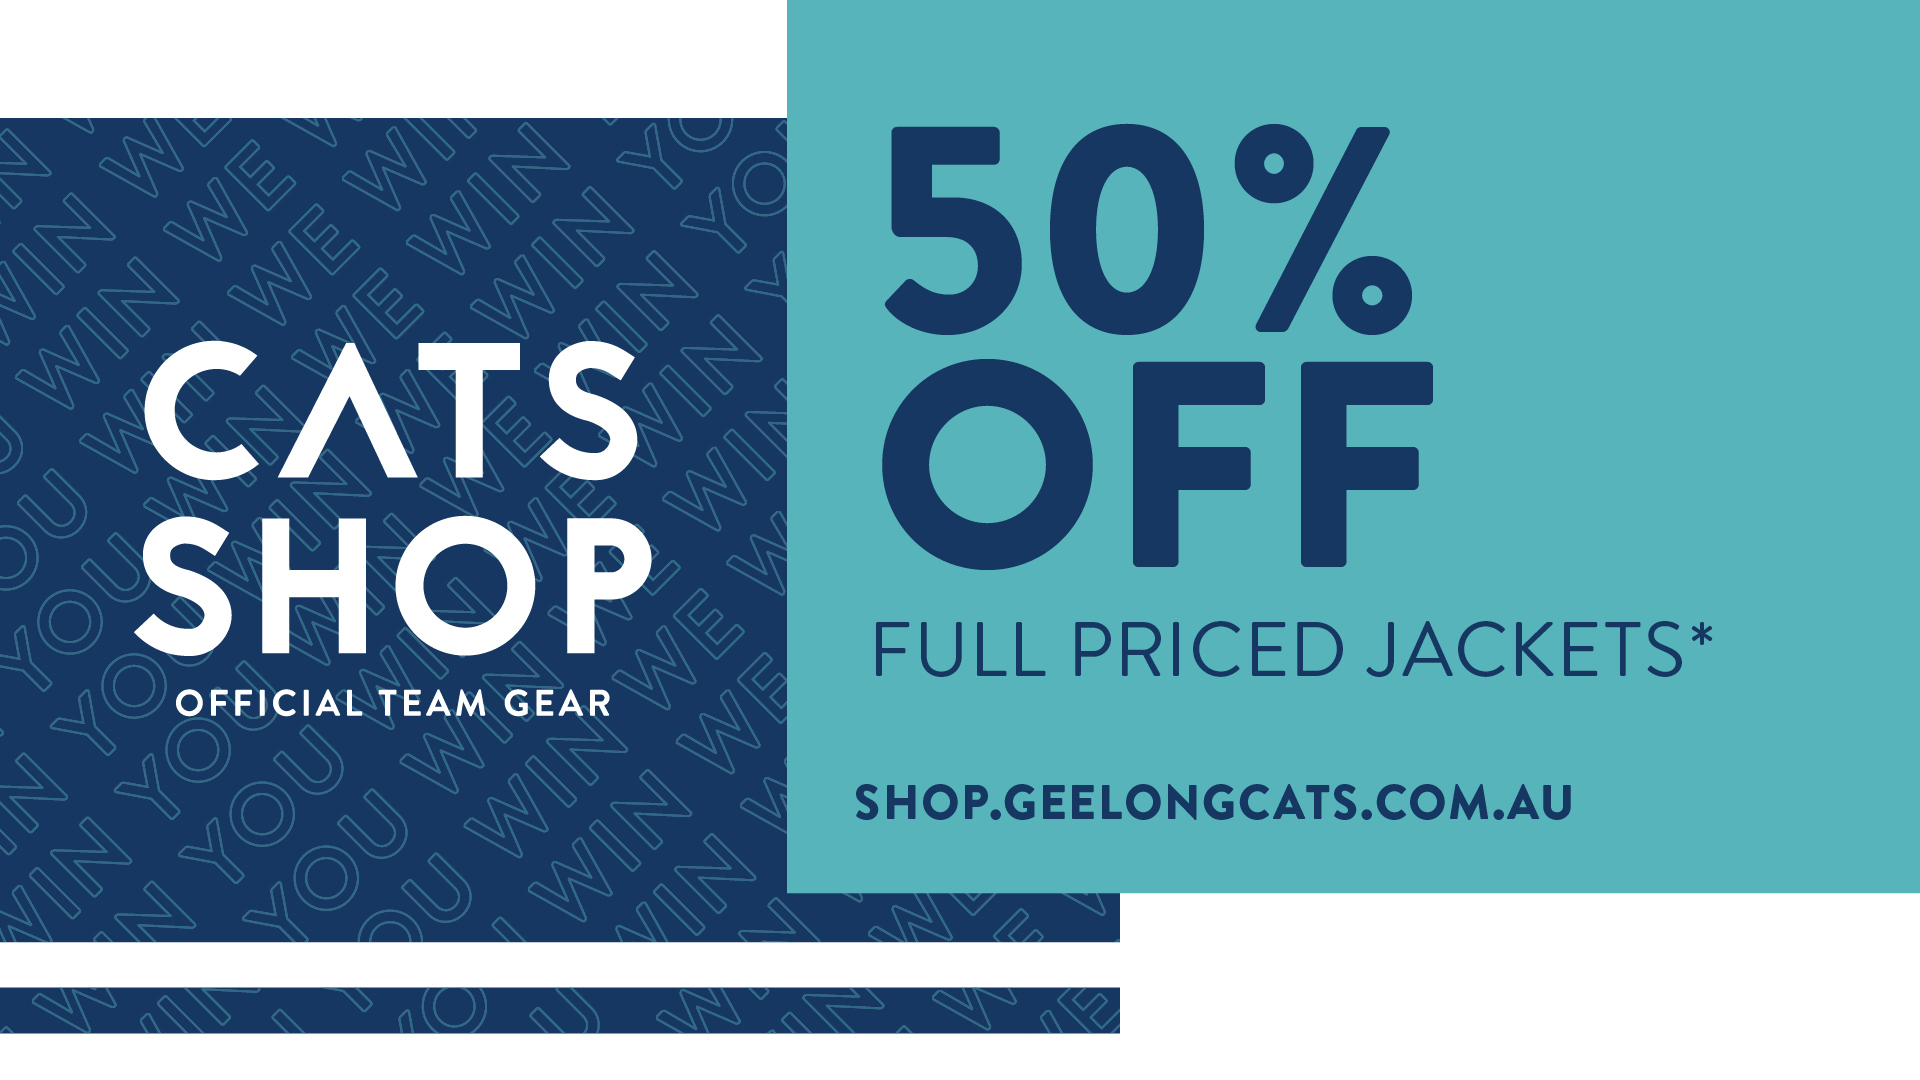 Geelong Cats On Twitter When We Win You Win Grab 50 Off Full Priced Jackets Shop Https T Co Lidr6vq372